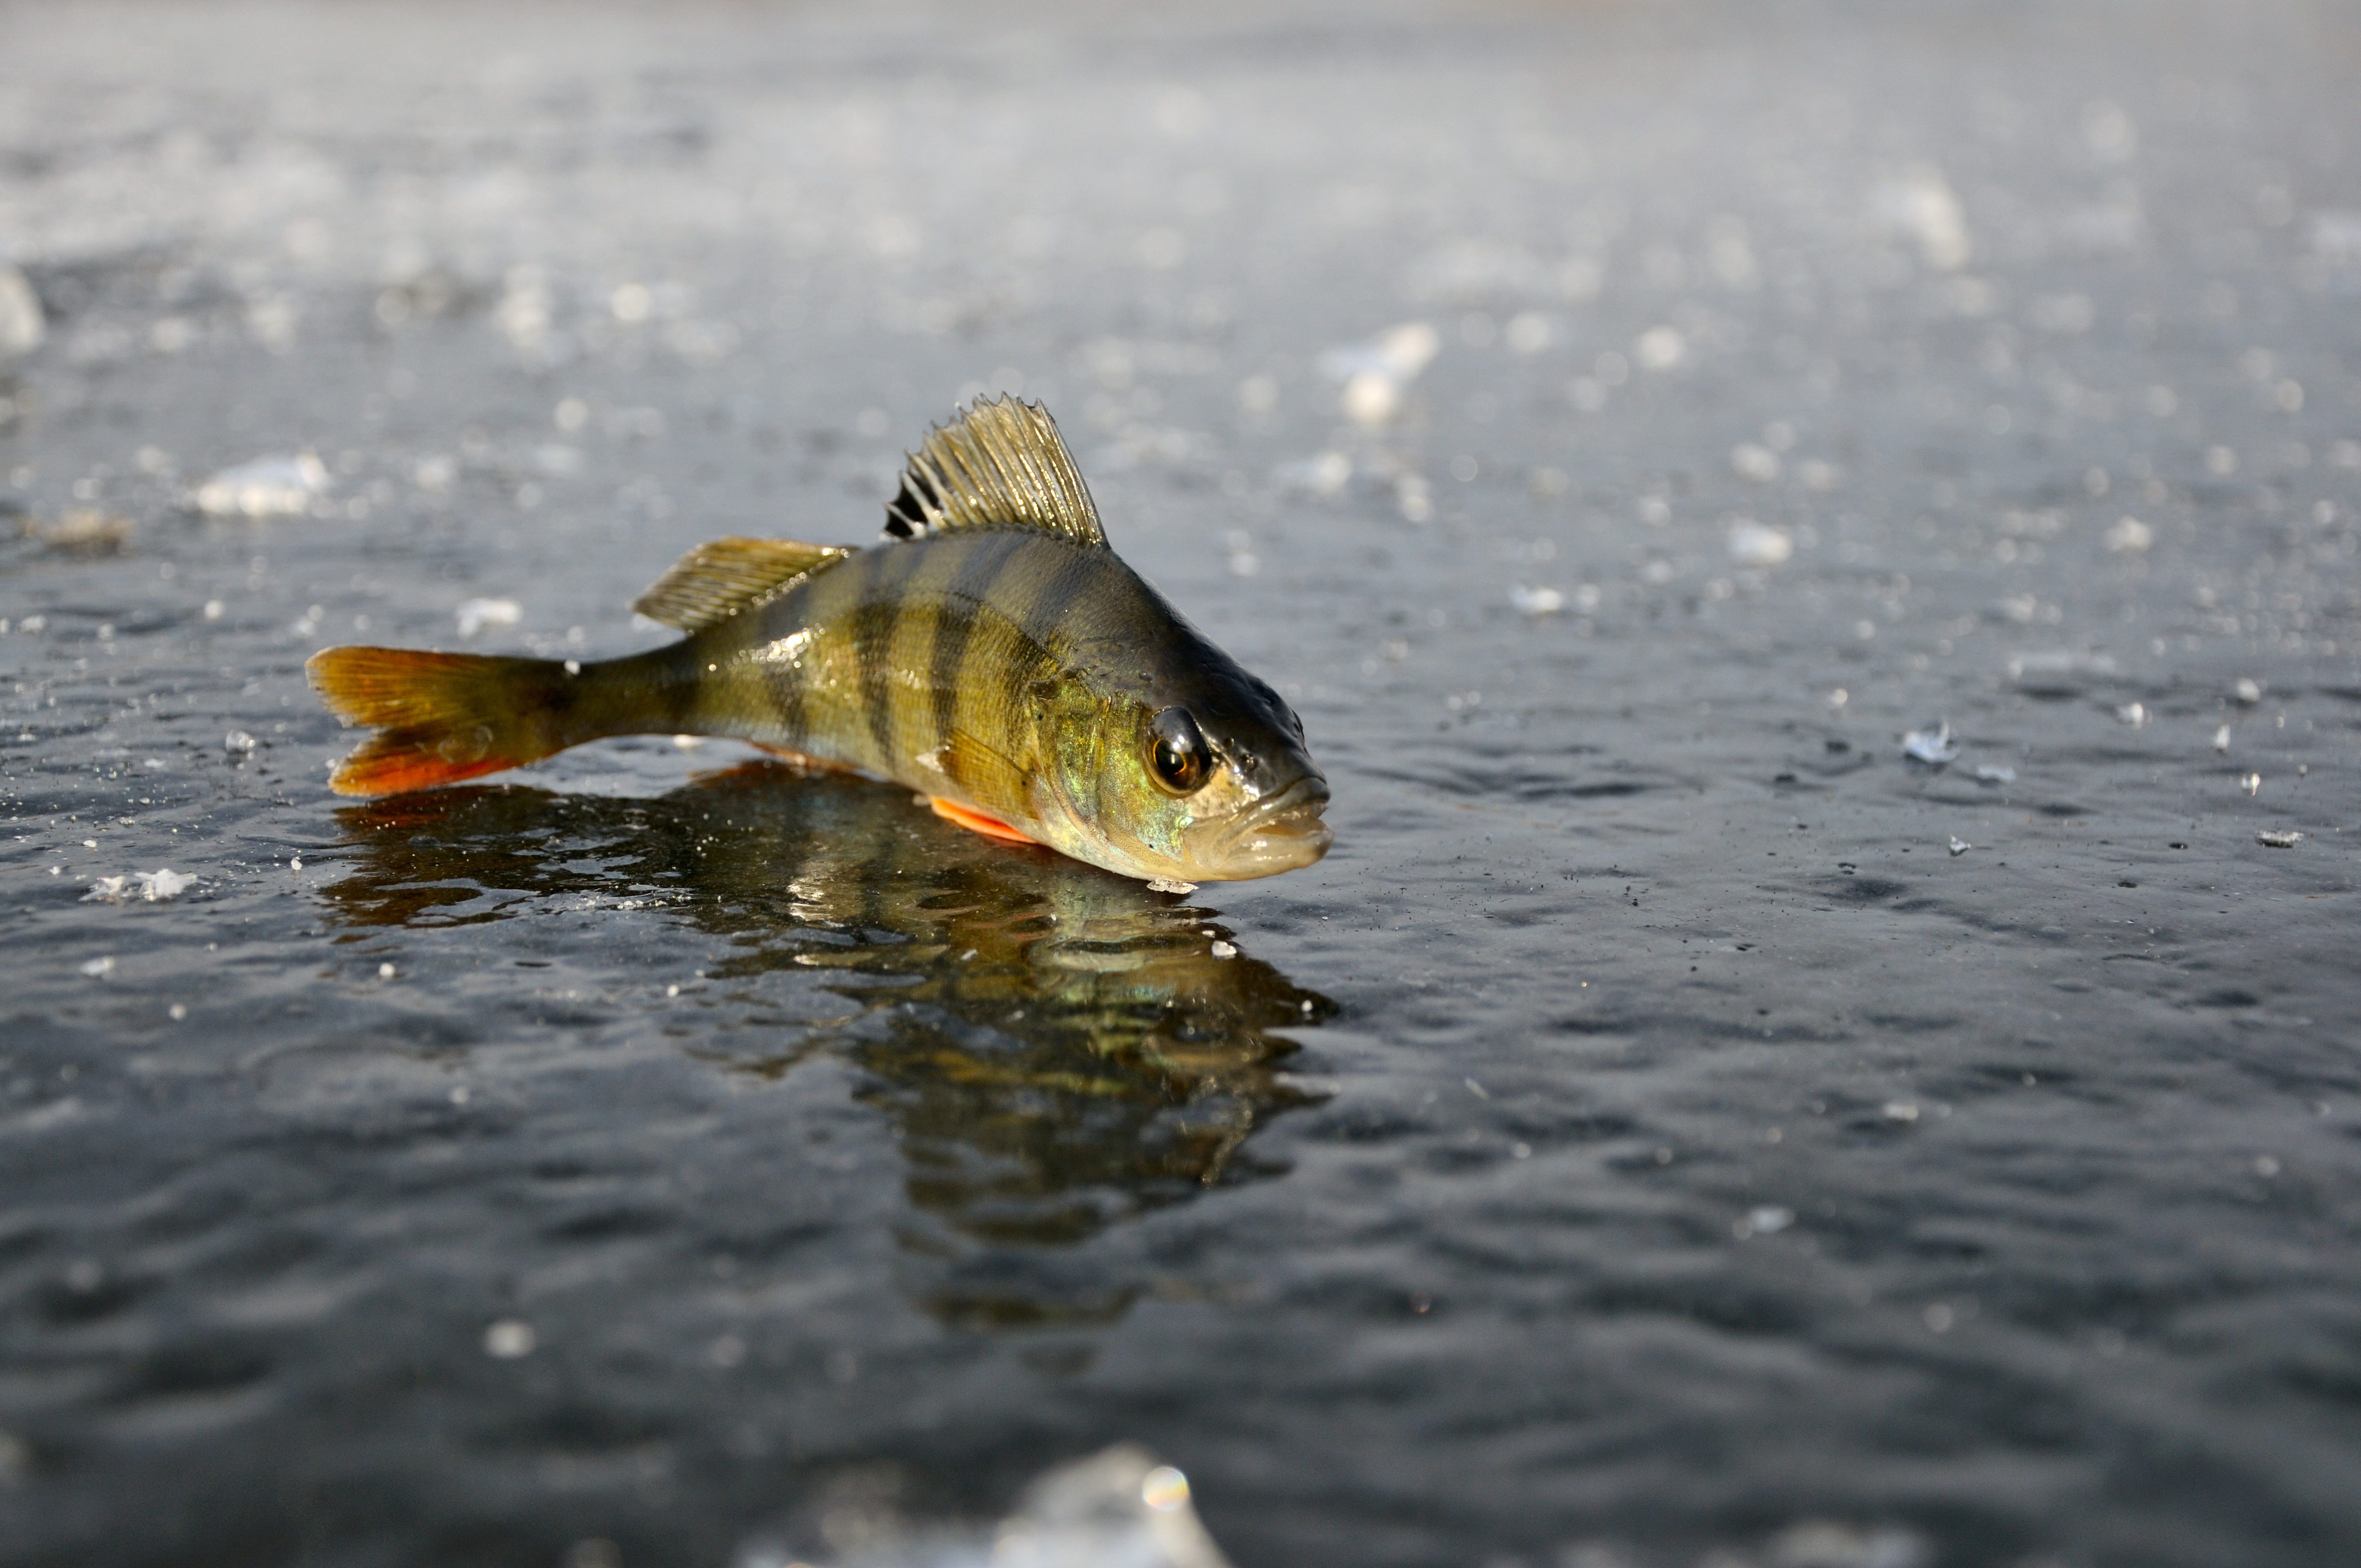 80490 download wallpaper Animals, Winter, Ice, Reflection, Fishing, Perch screensavers and pictures for free